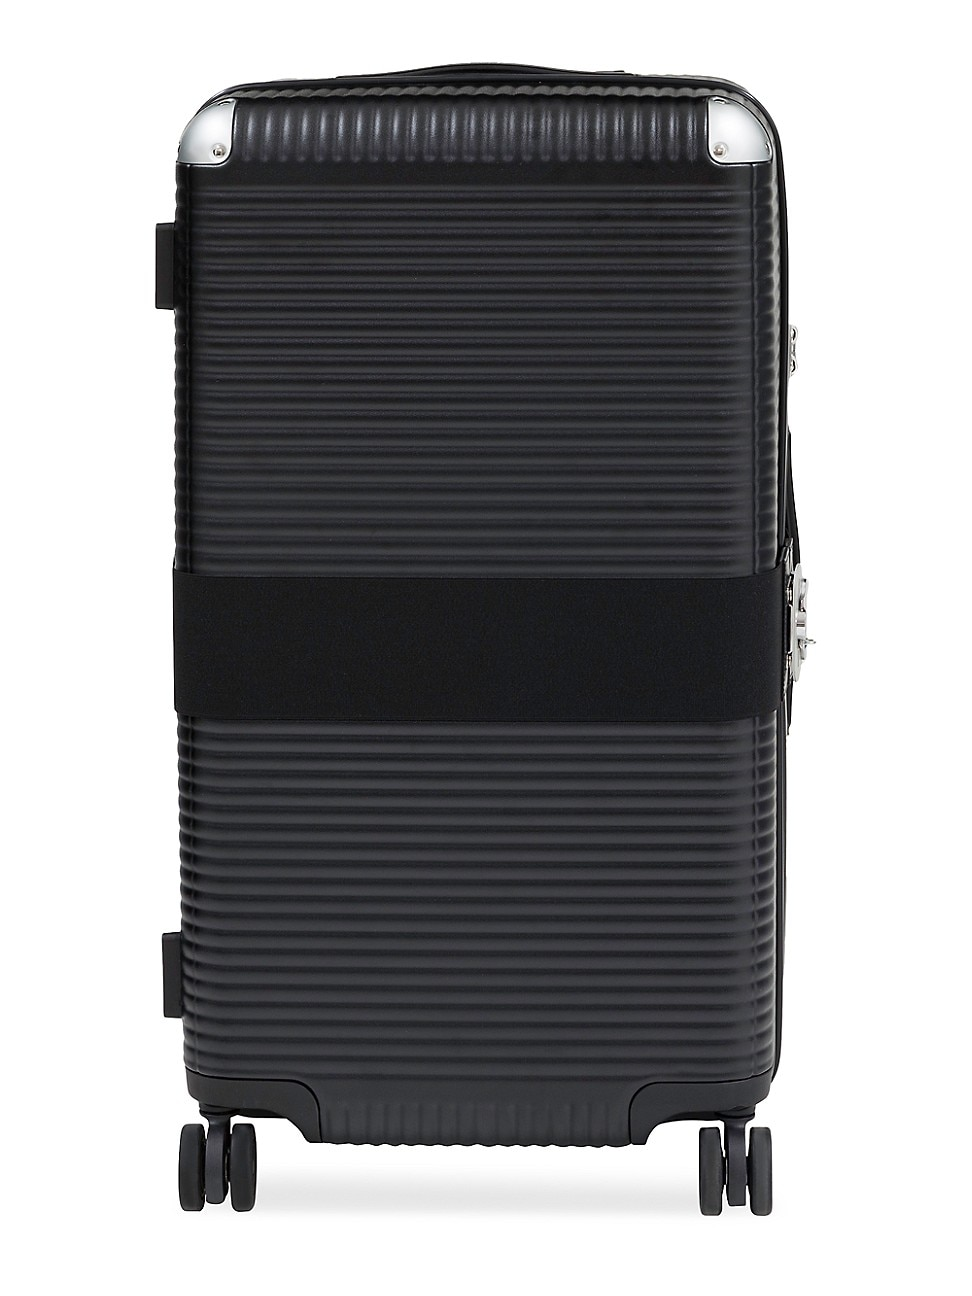 Fpm Bank Trunk On Wheels Suitcase In Eclipse Black